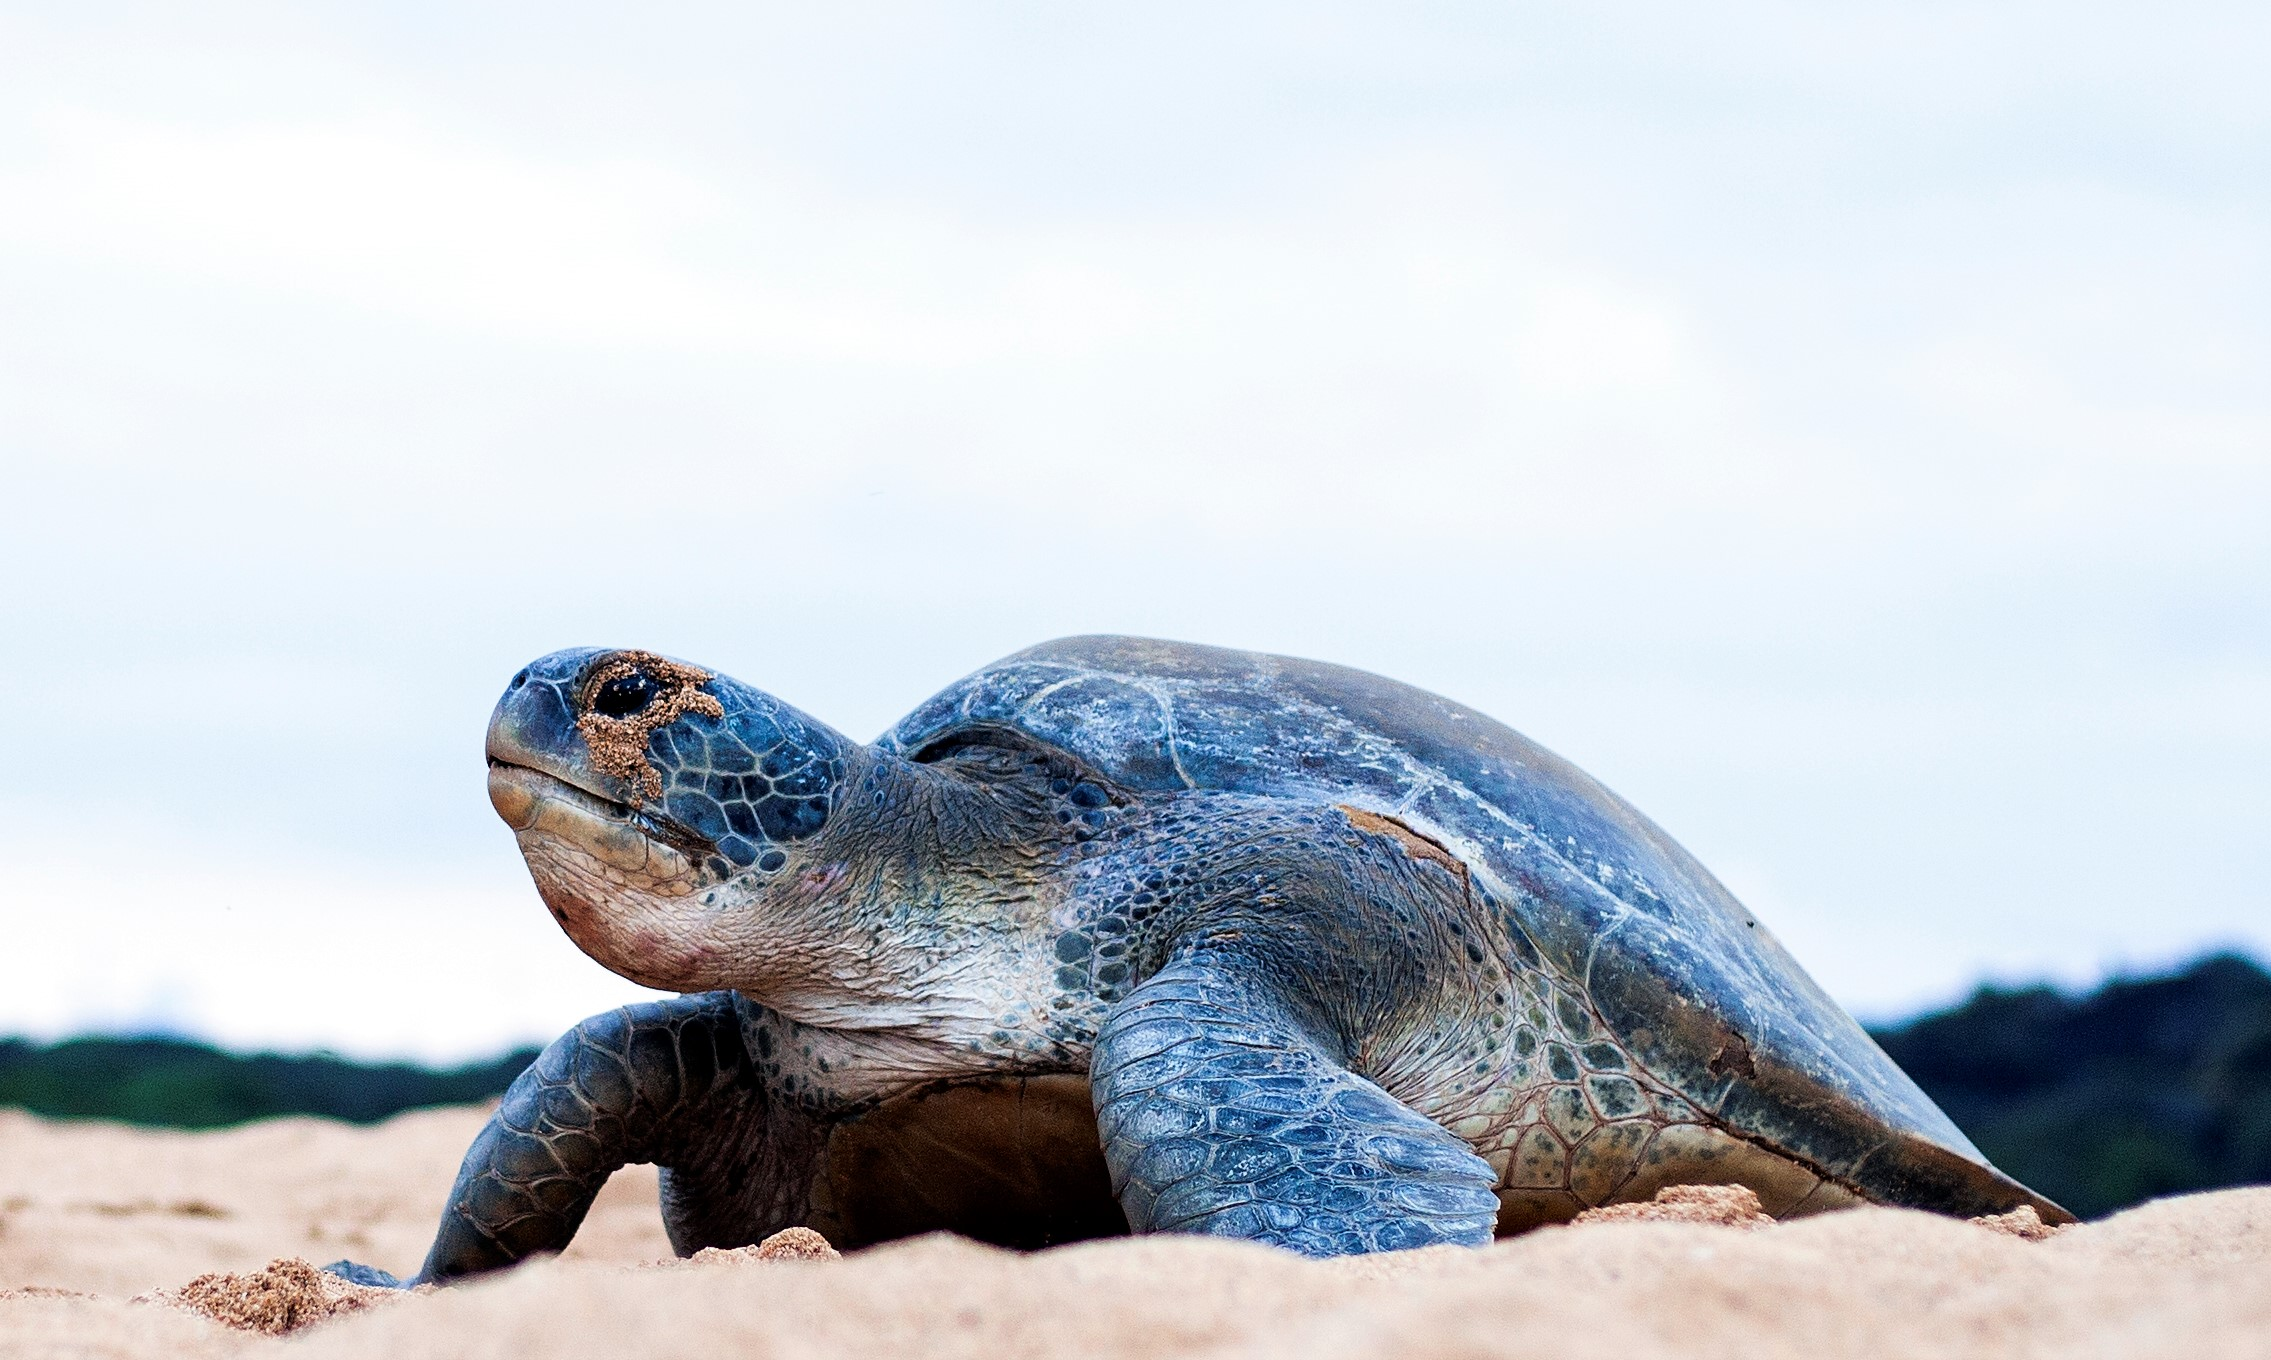 Females sea turtles must return to their nesting beaches to lay their eggs in the sand. Their slow movements on land make this a risky period. Human development and beach erosion make the process more arduous.